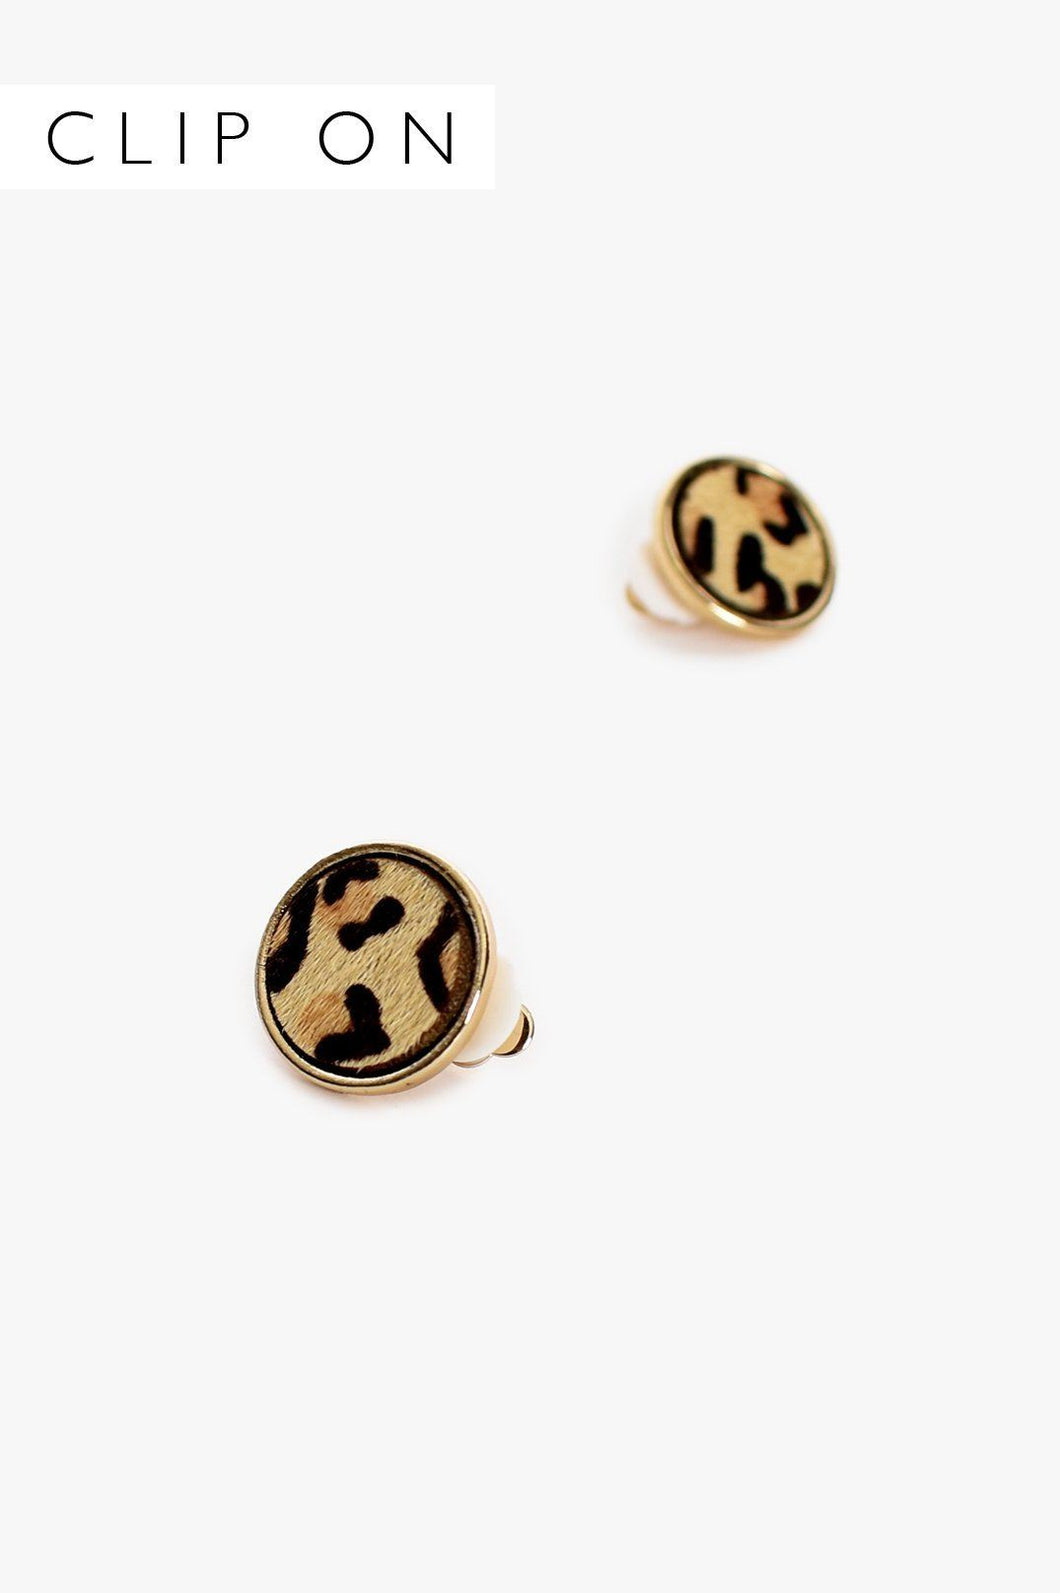 Adorne Hide Button Clip On Earrings Leopard Gold - Global Free Style